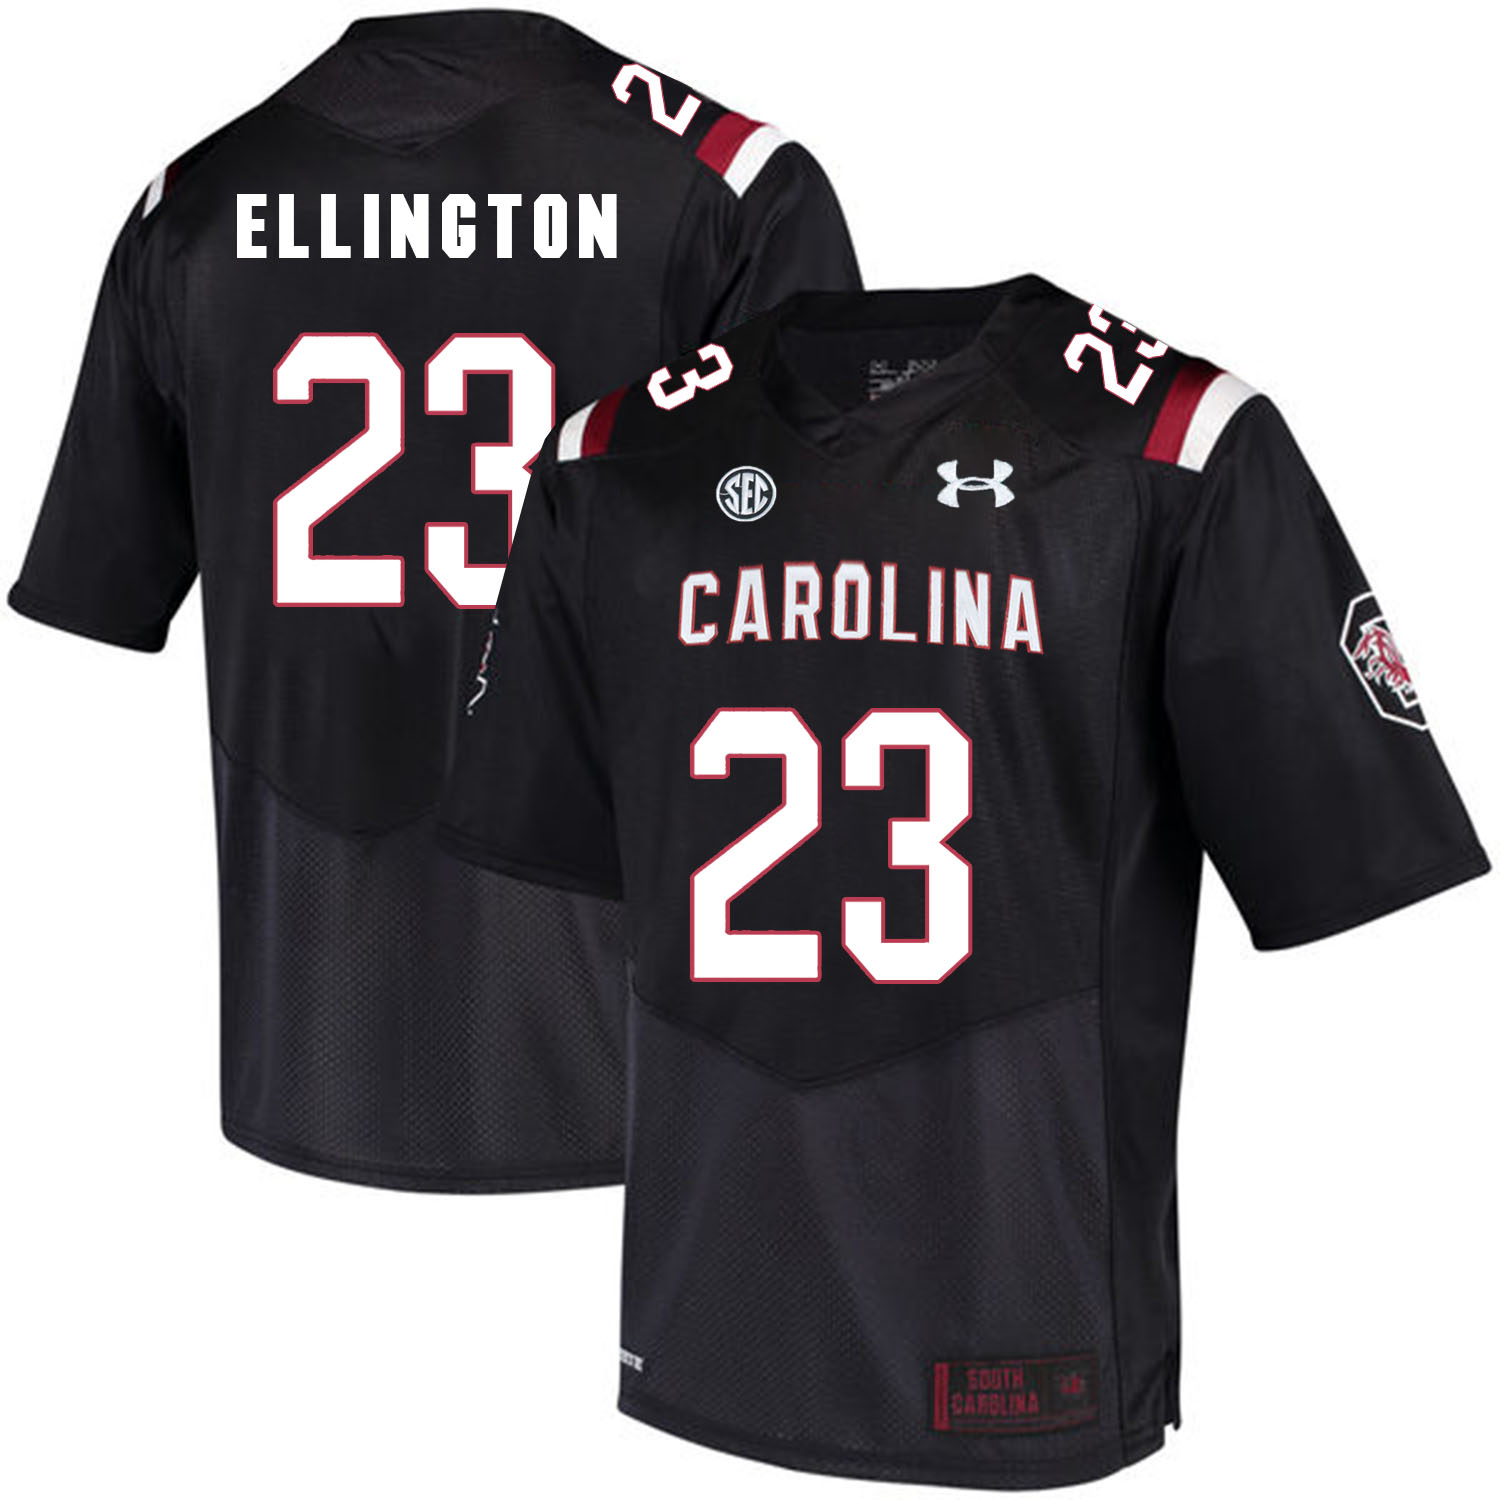 South Carolina Gamecocks 23 Bruce Ellington Black College Football Jersey